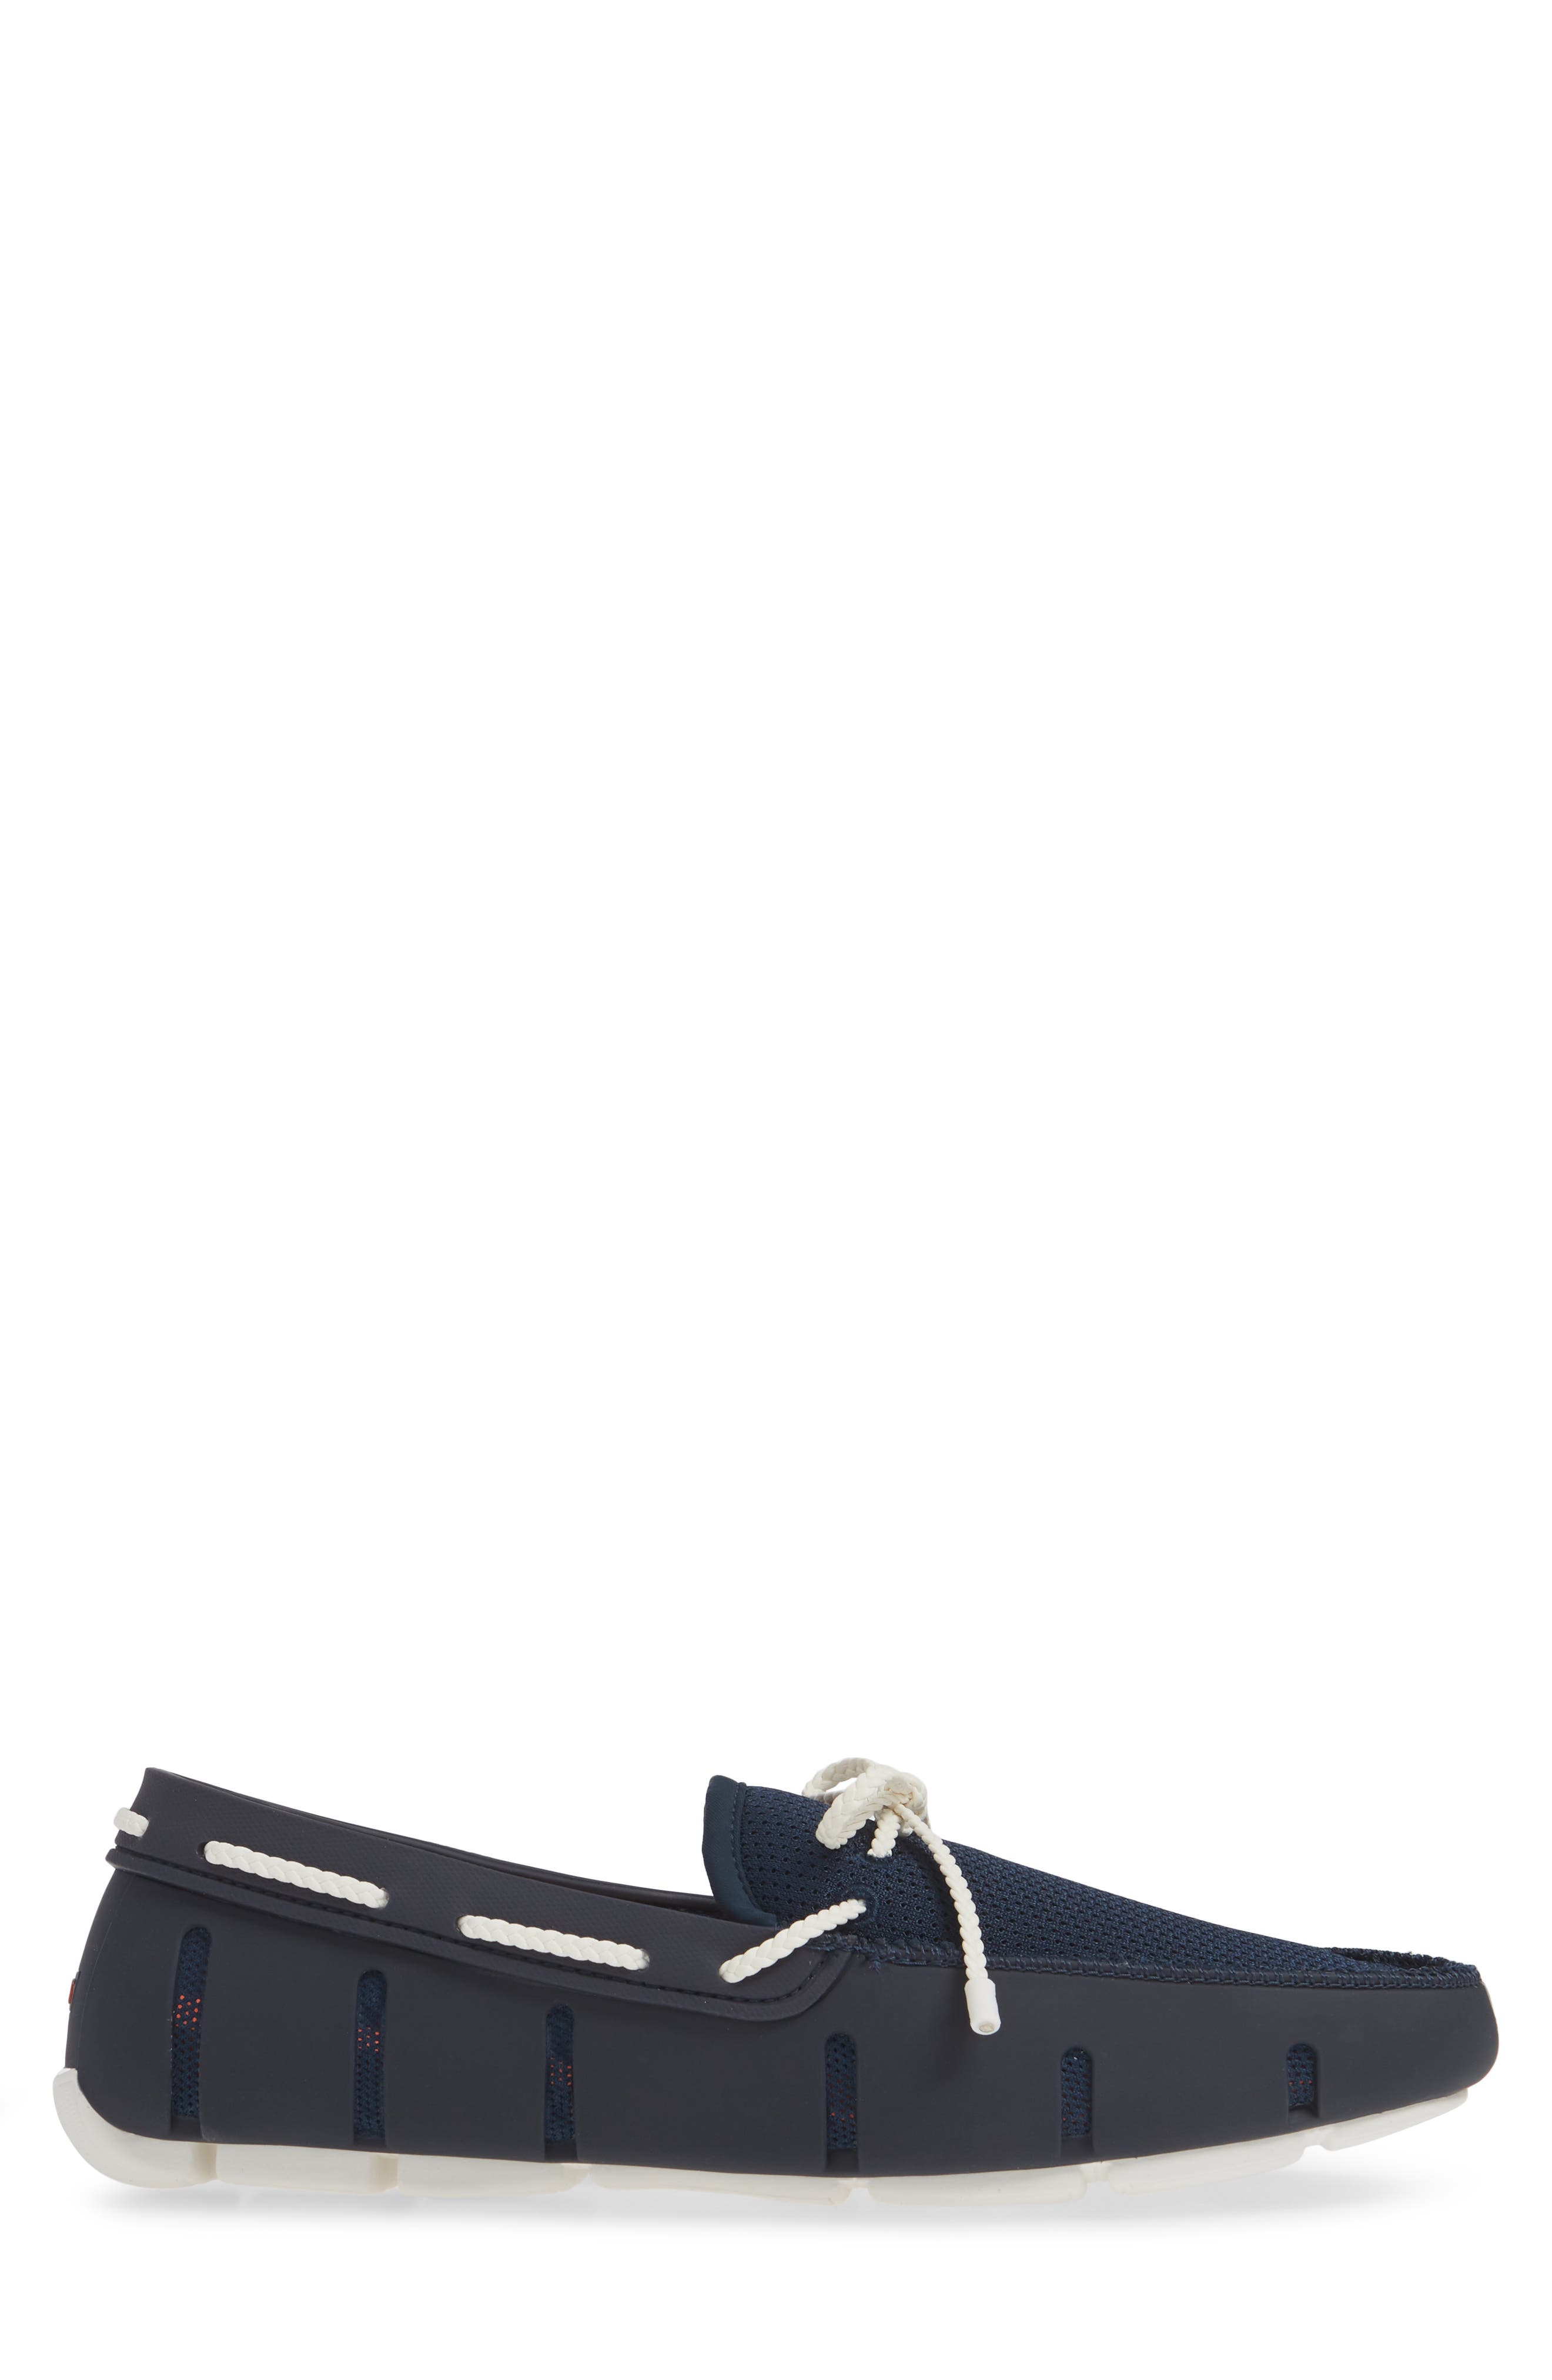 SWIMS, Lace Loafer, Alternate thumbnail 3, color, DARK NAVY/ WHITE